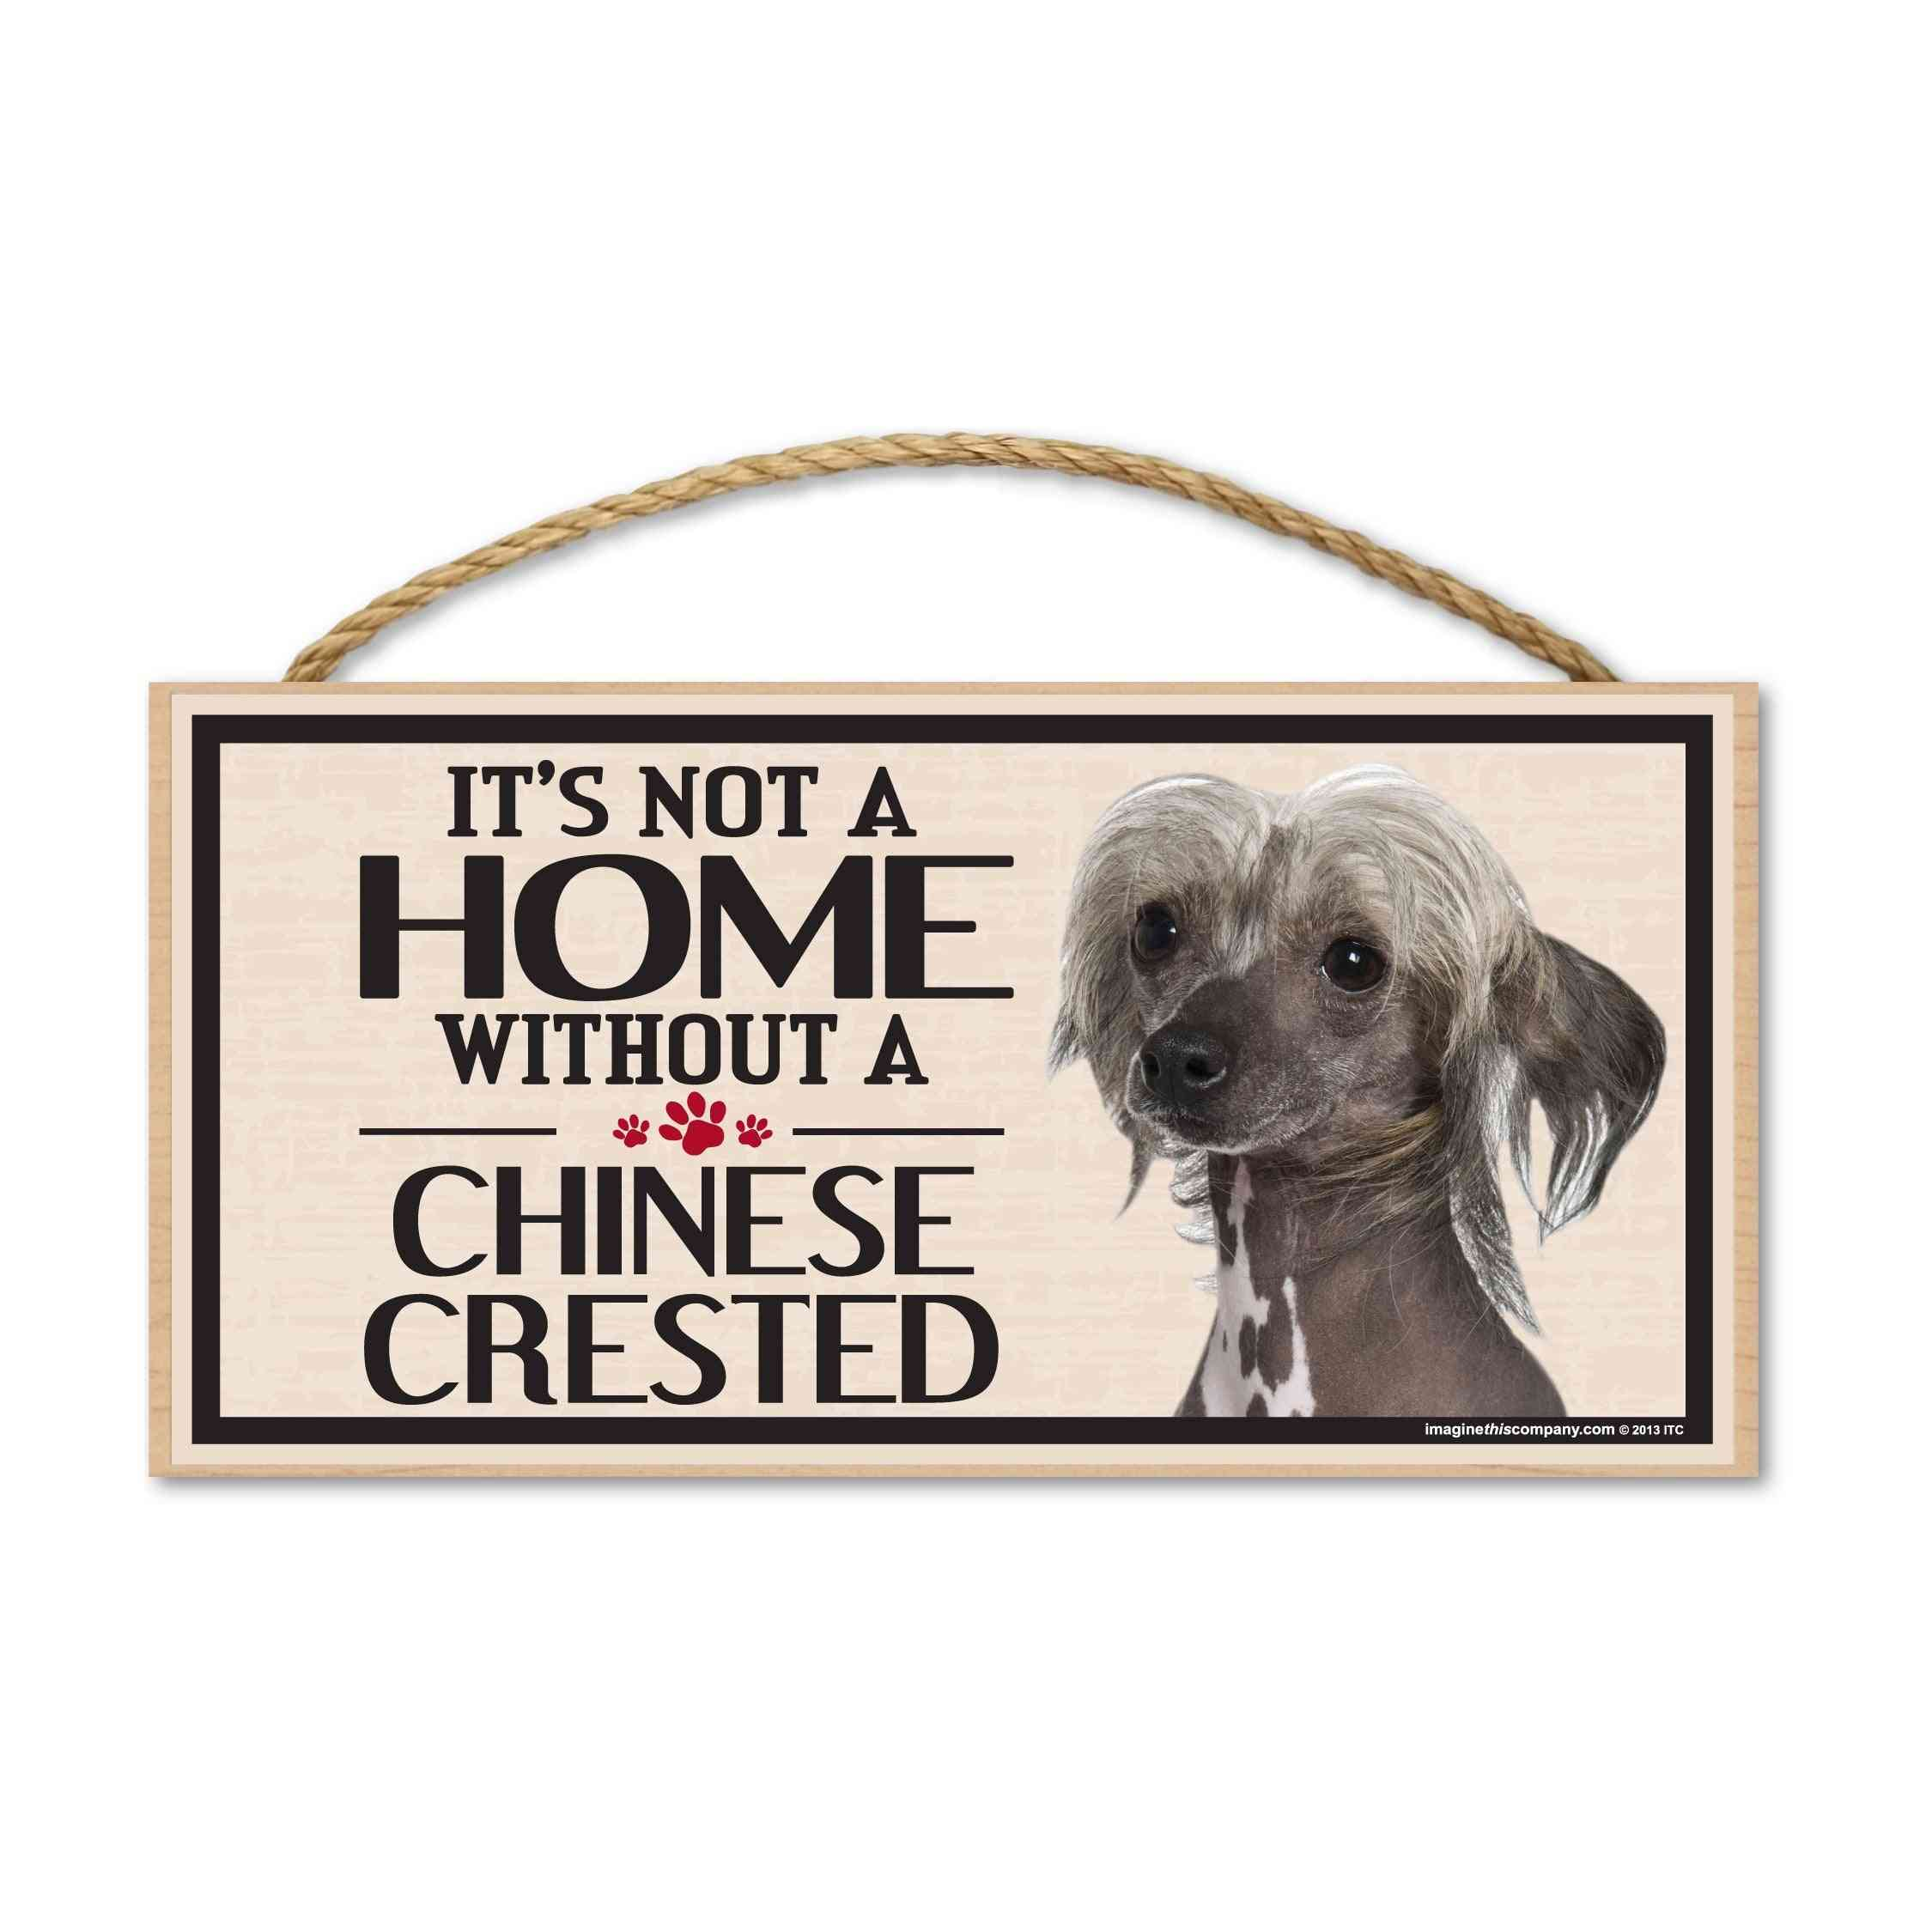 Sign, Wood, It's Not A Home Without A Chinese Crested, 10